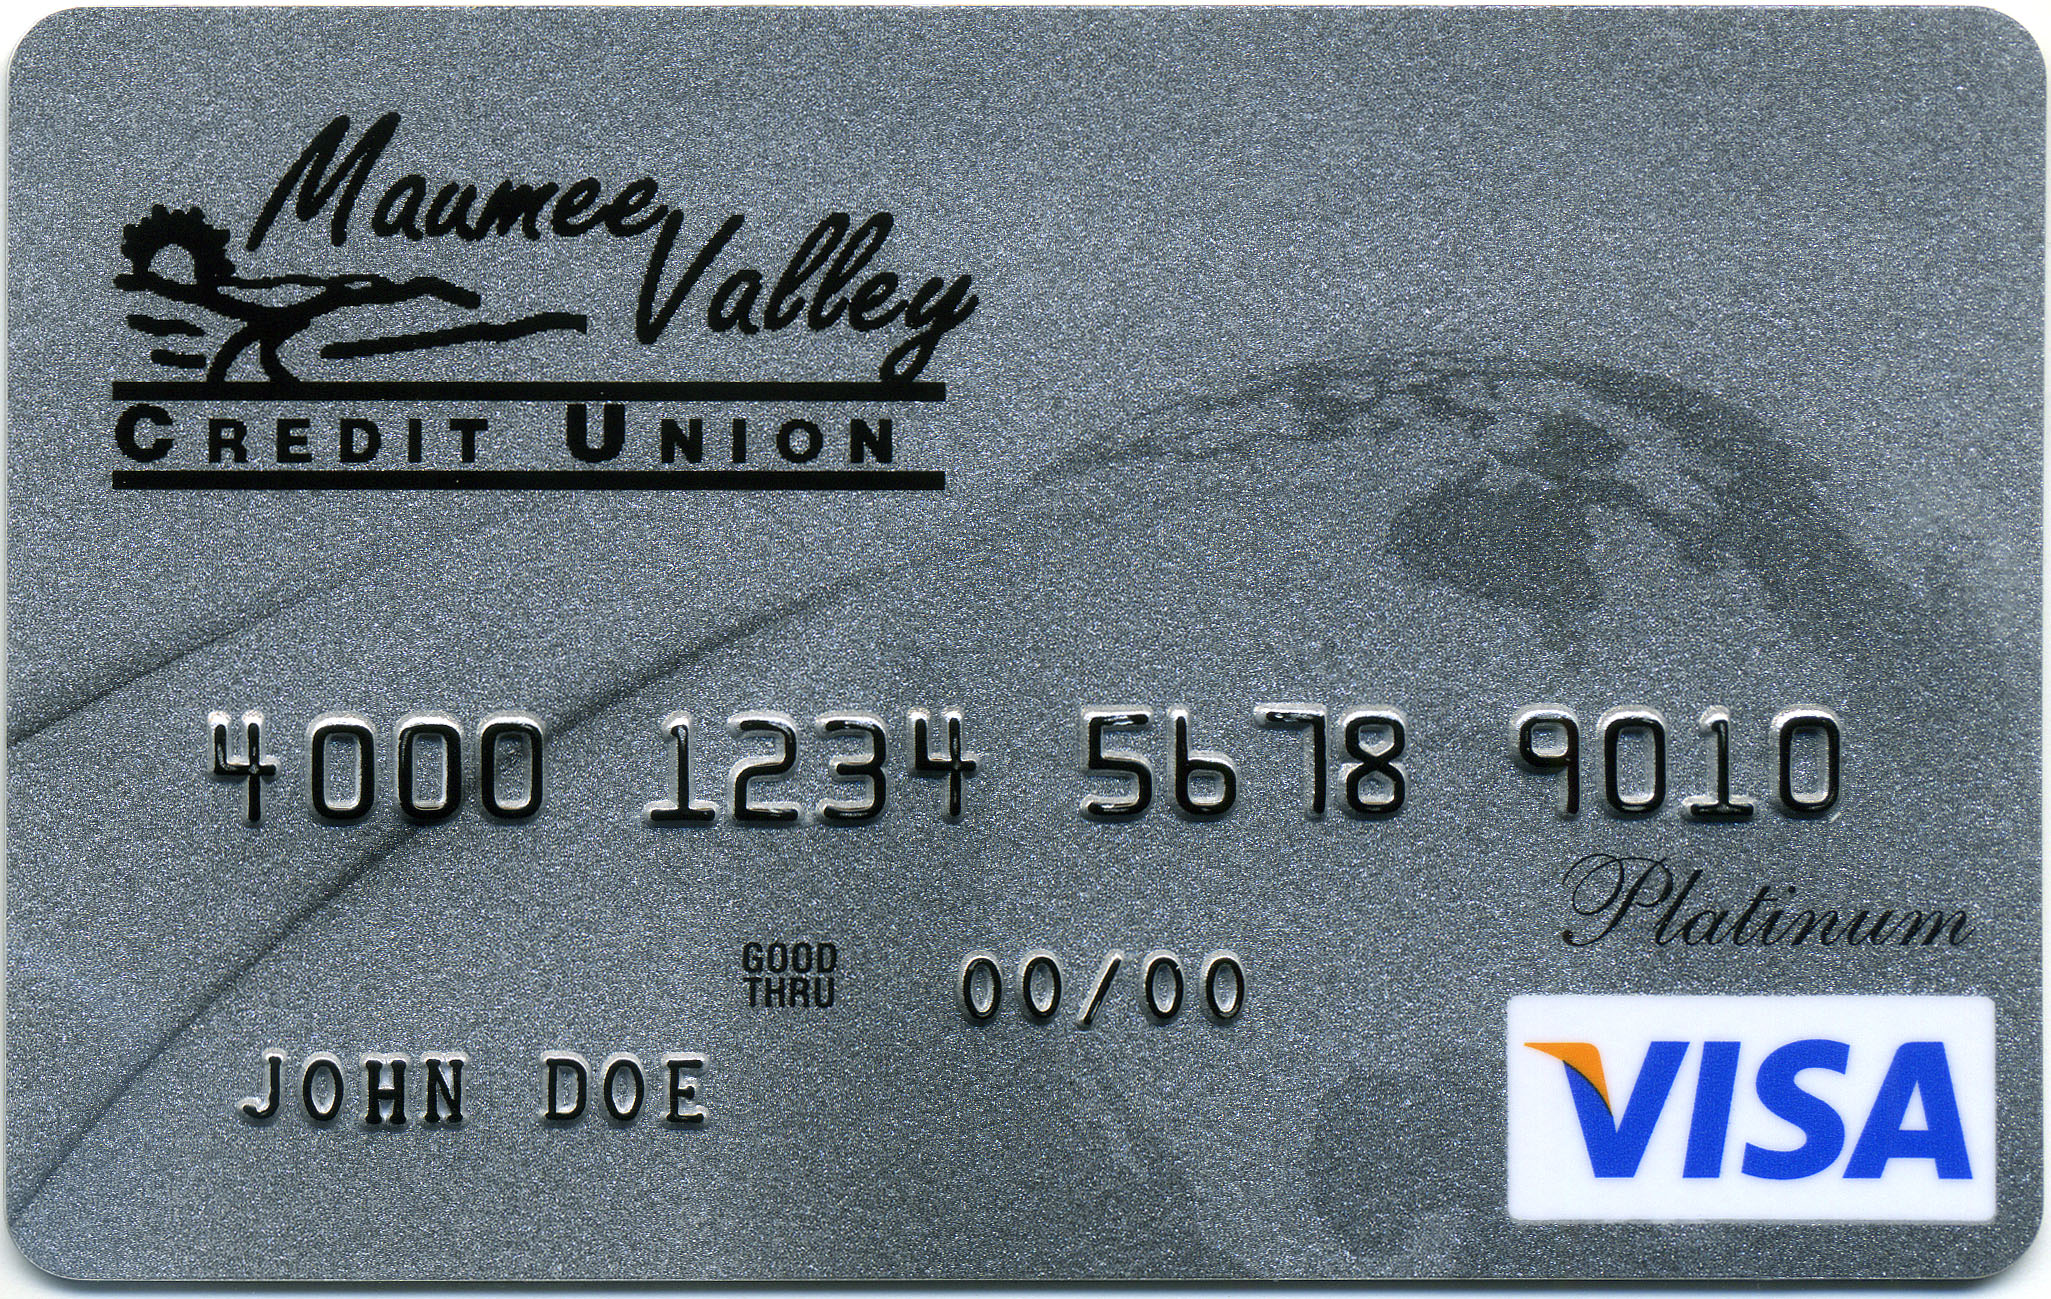 Visa card with Maumee Valley Credit Union logo